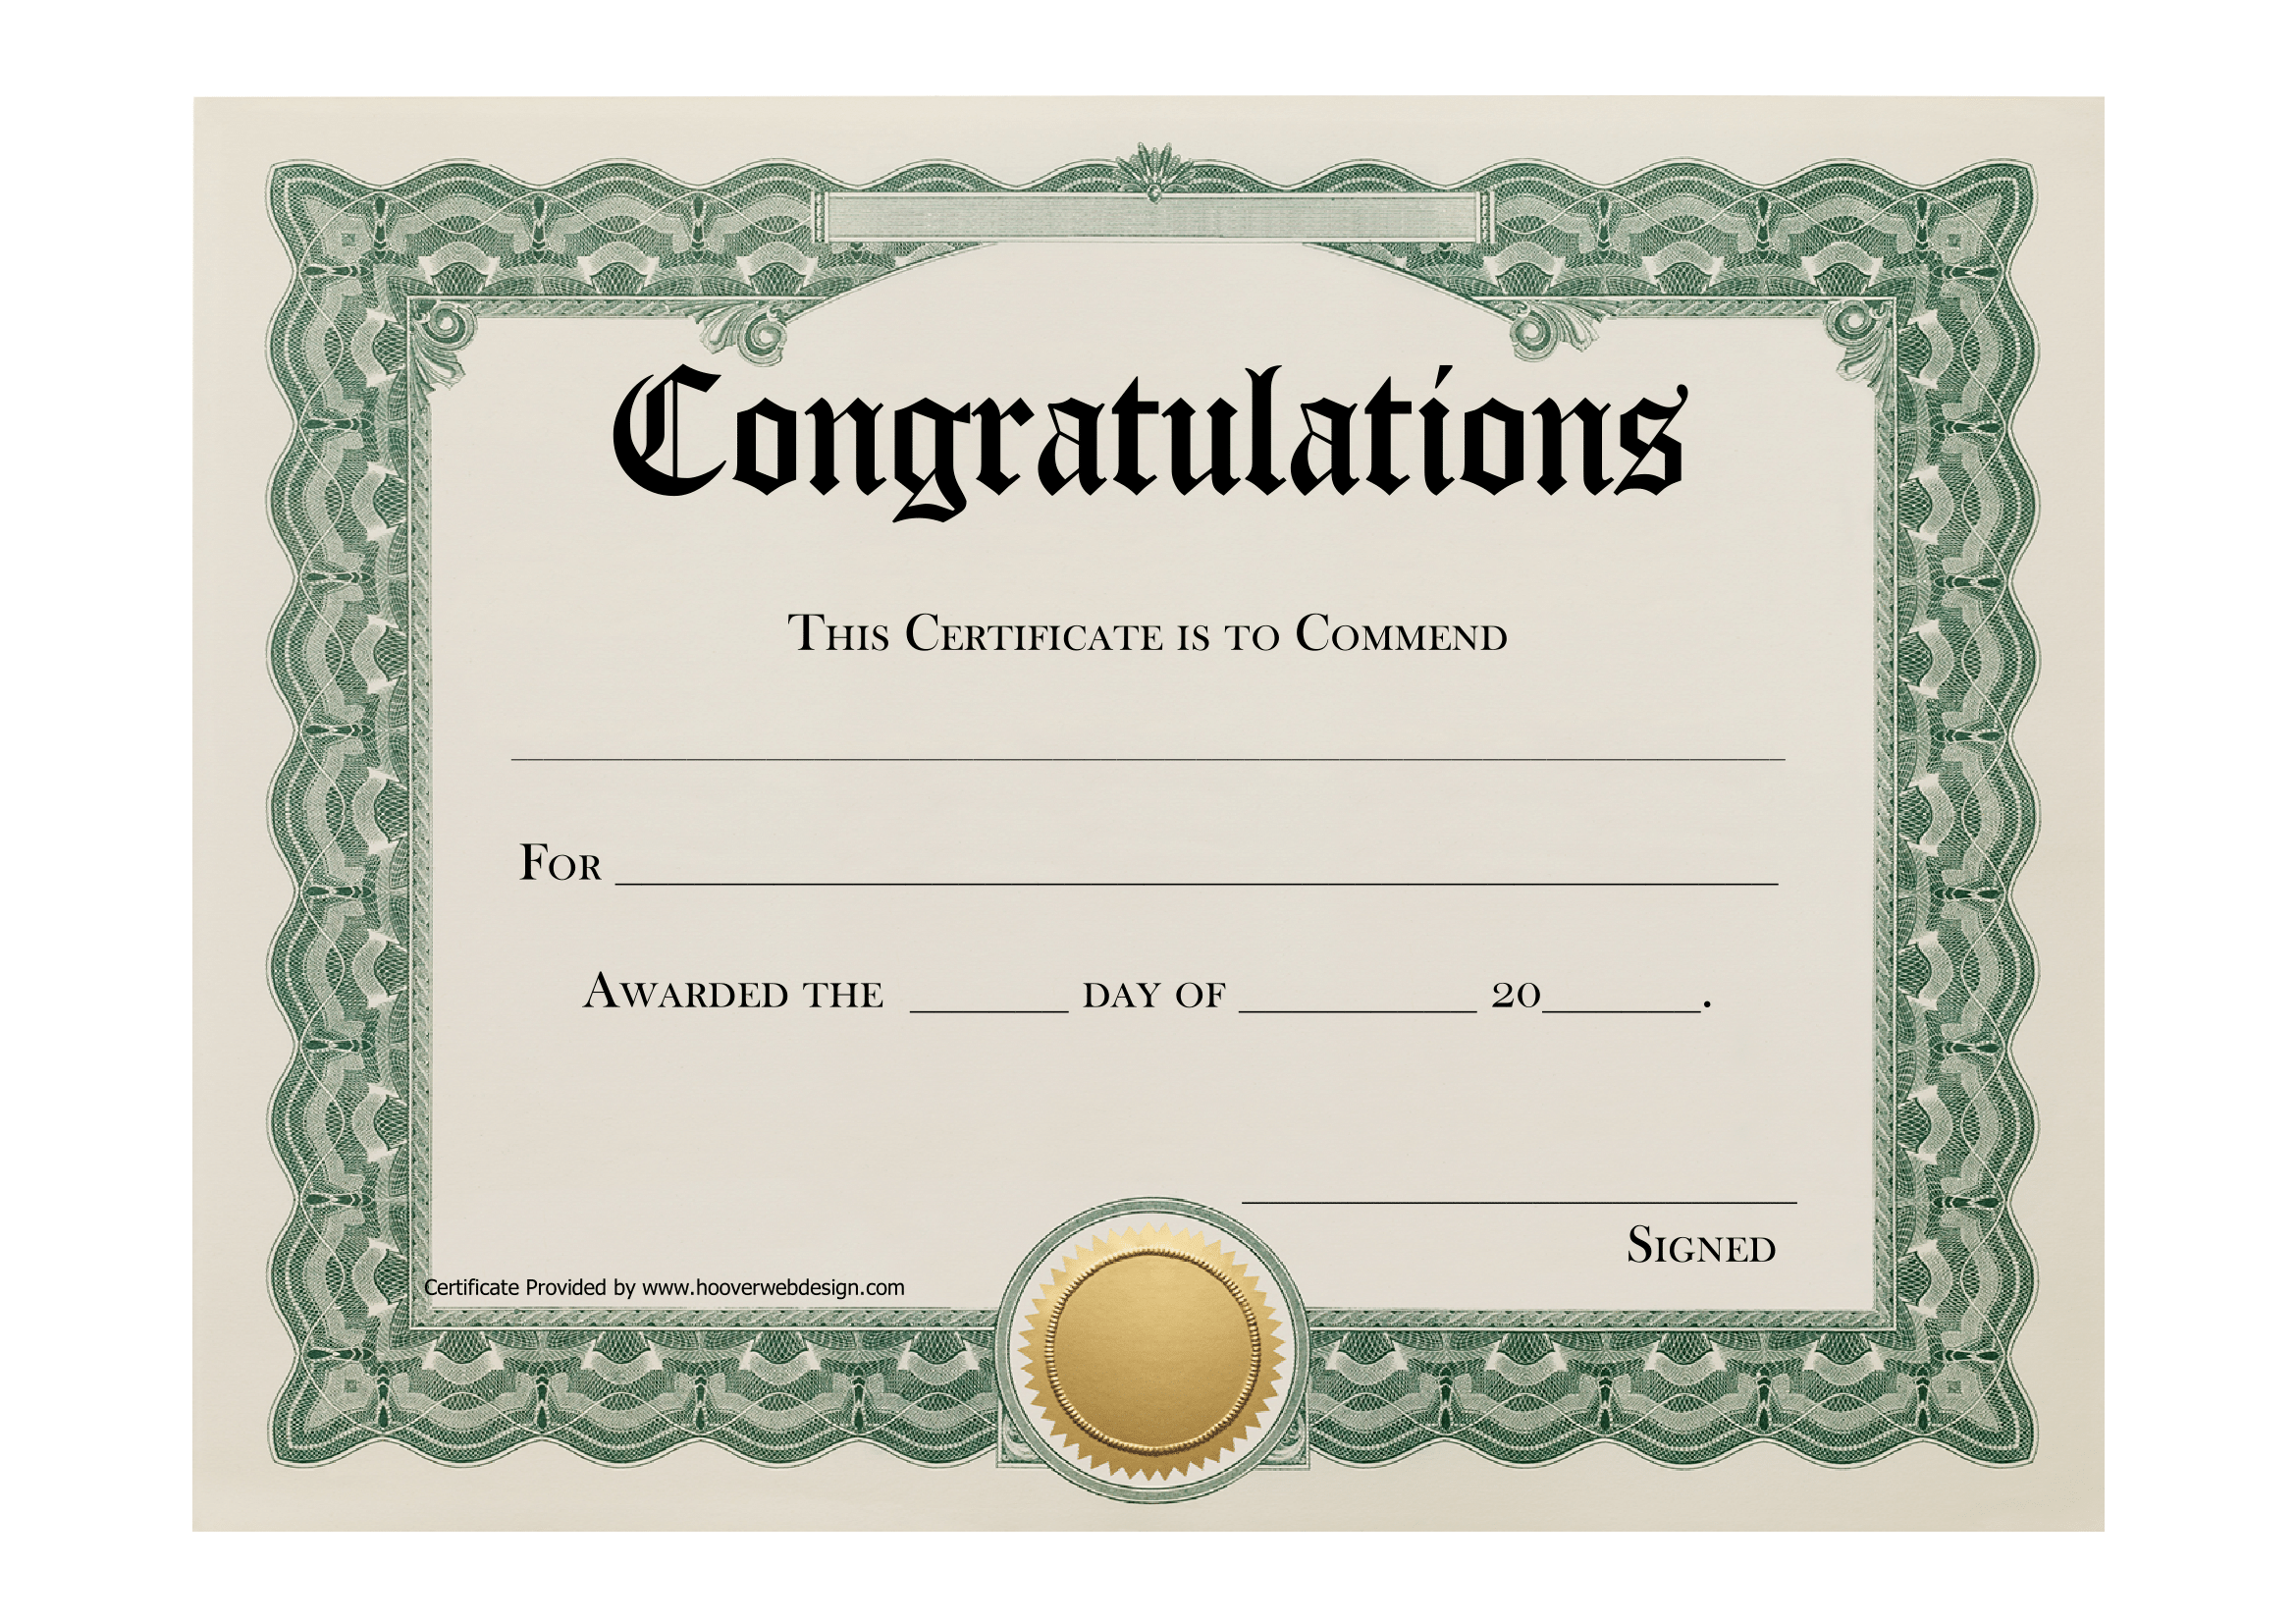 Congratulations Certificate Template – FREE Download